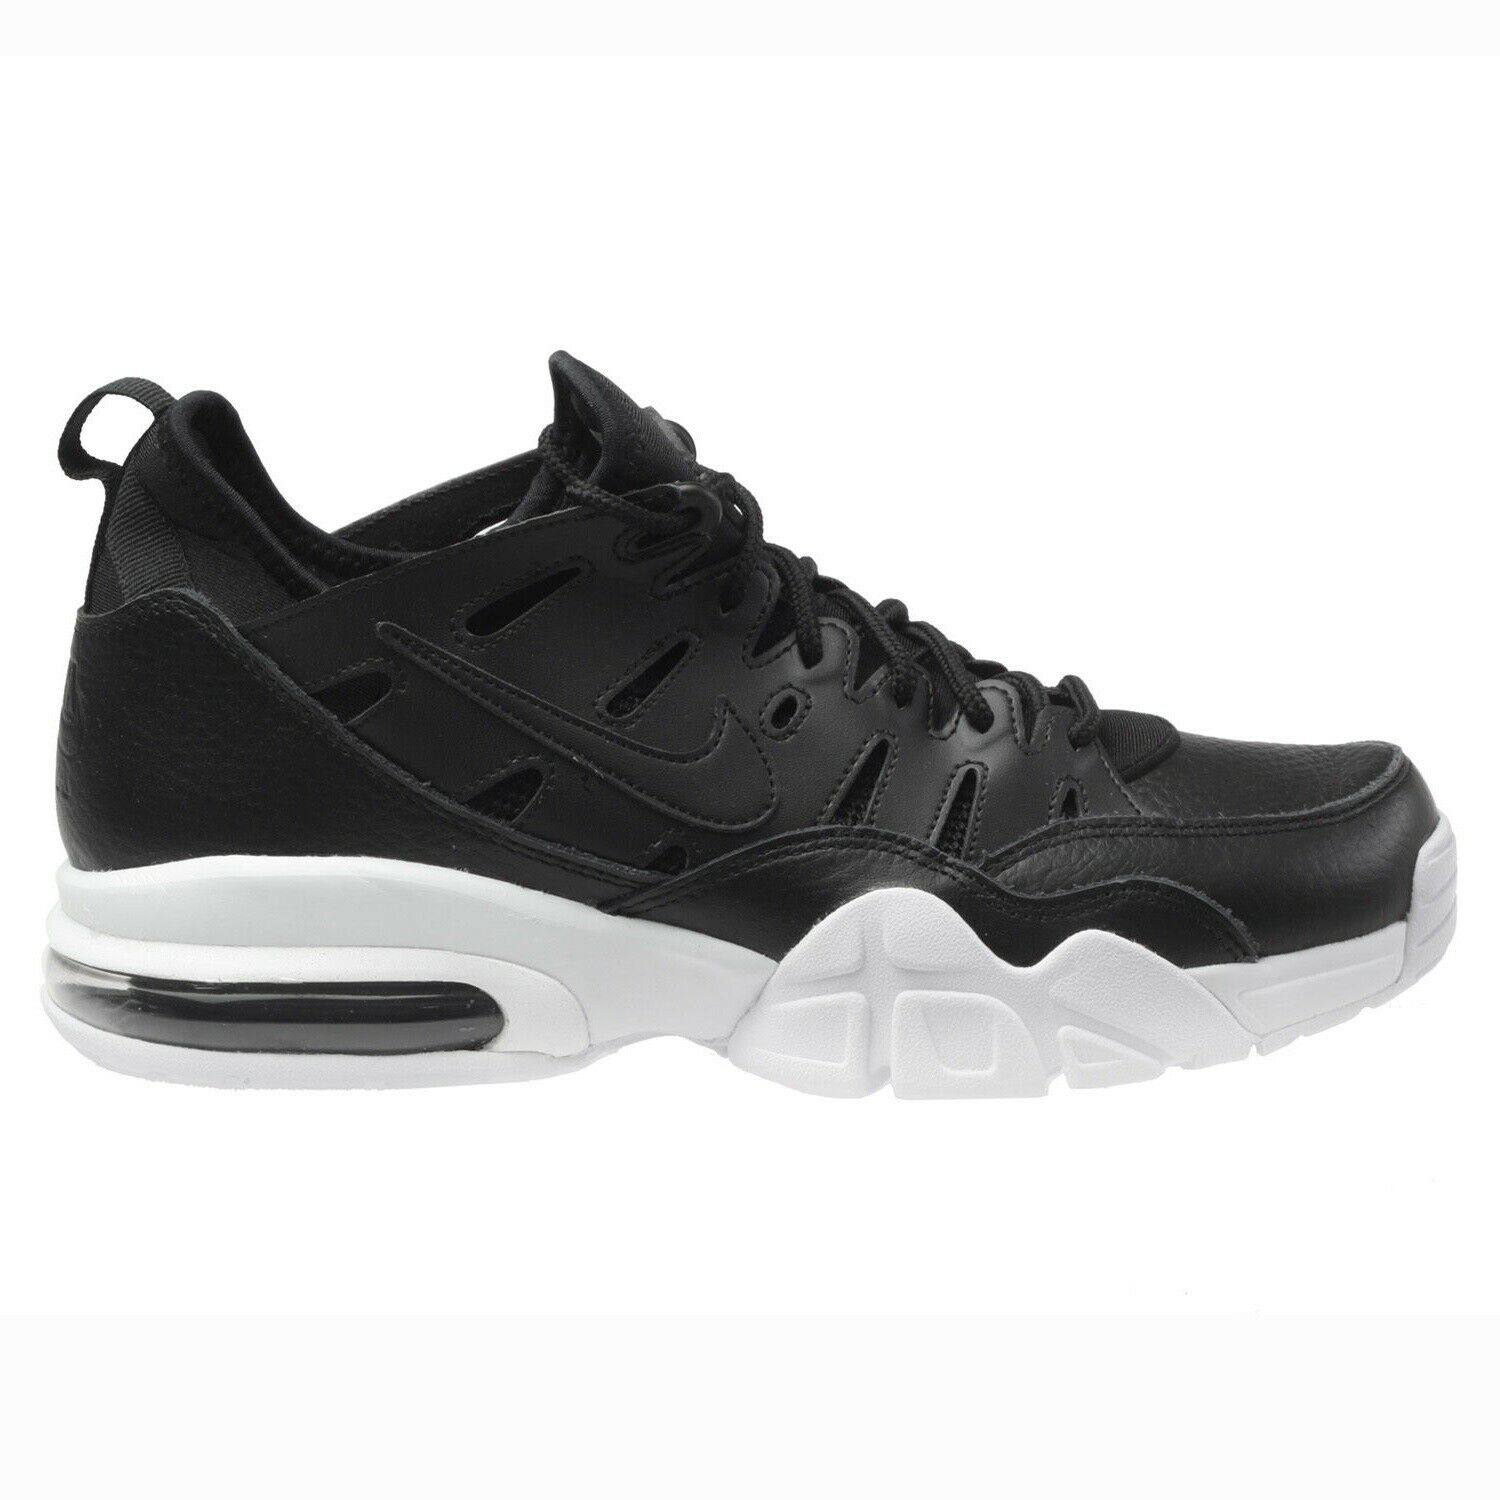 Nike Air Trainer Max '94 Low Mens 880995-004 Black White Training shoes Size 10